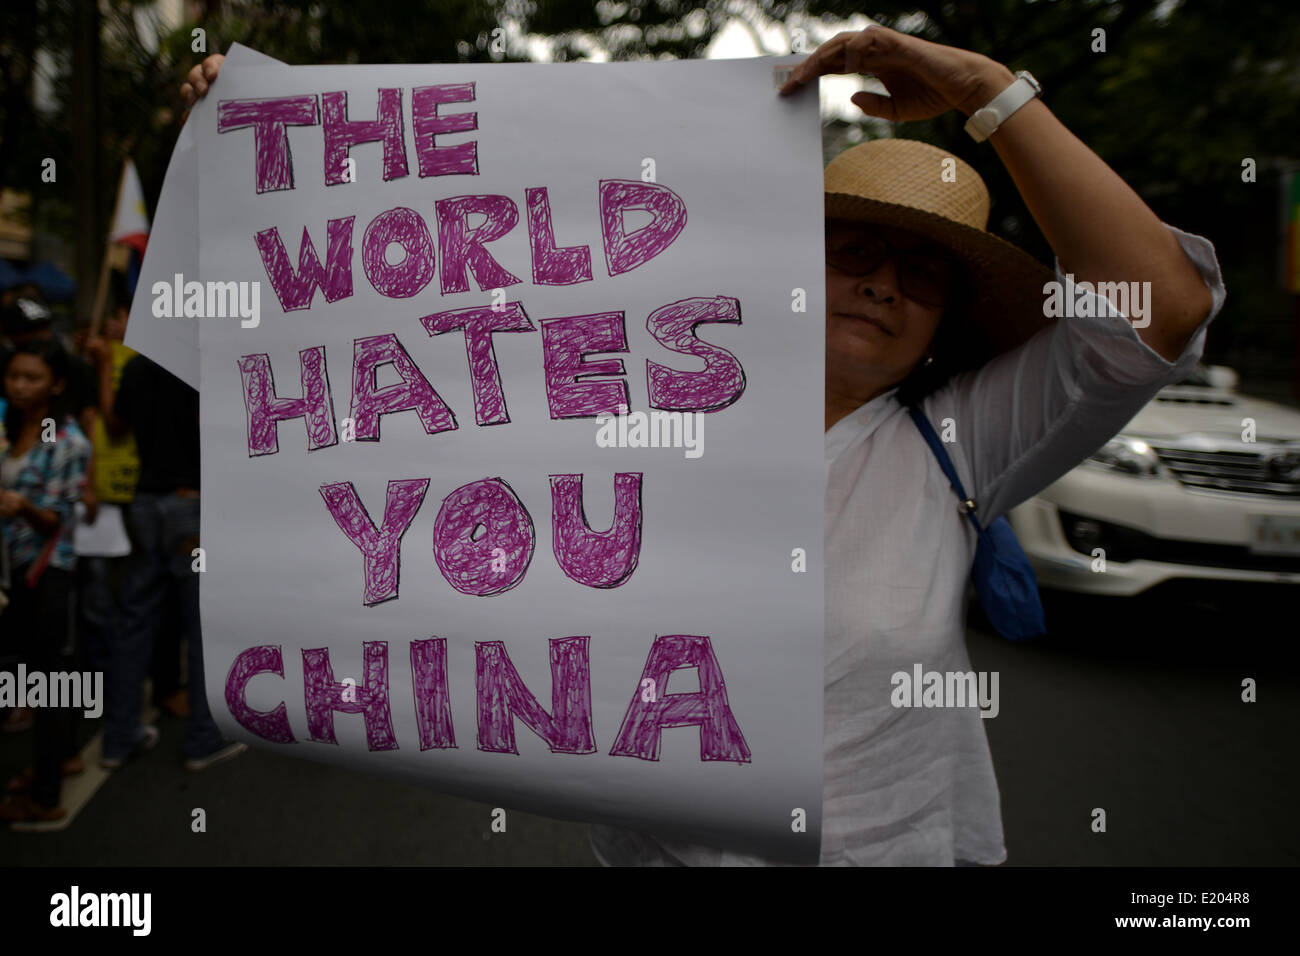 Makati, Philippines. 12th June, 2014. A demonstrator holds a sign during a protest outside the Chinese consulate - Stock Image